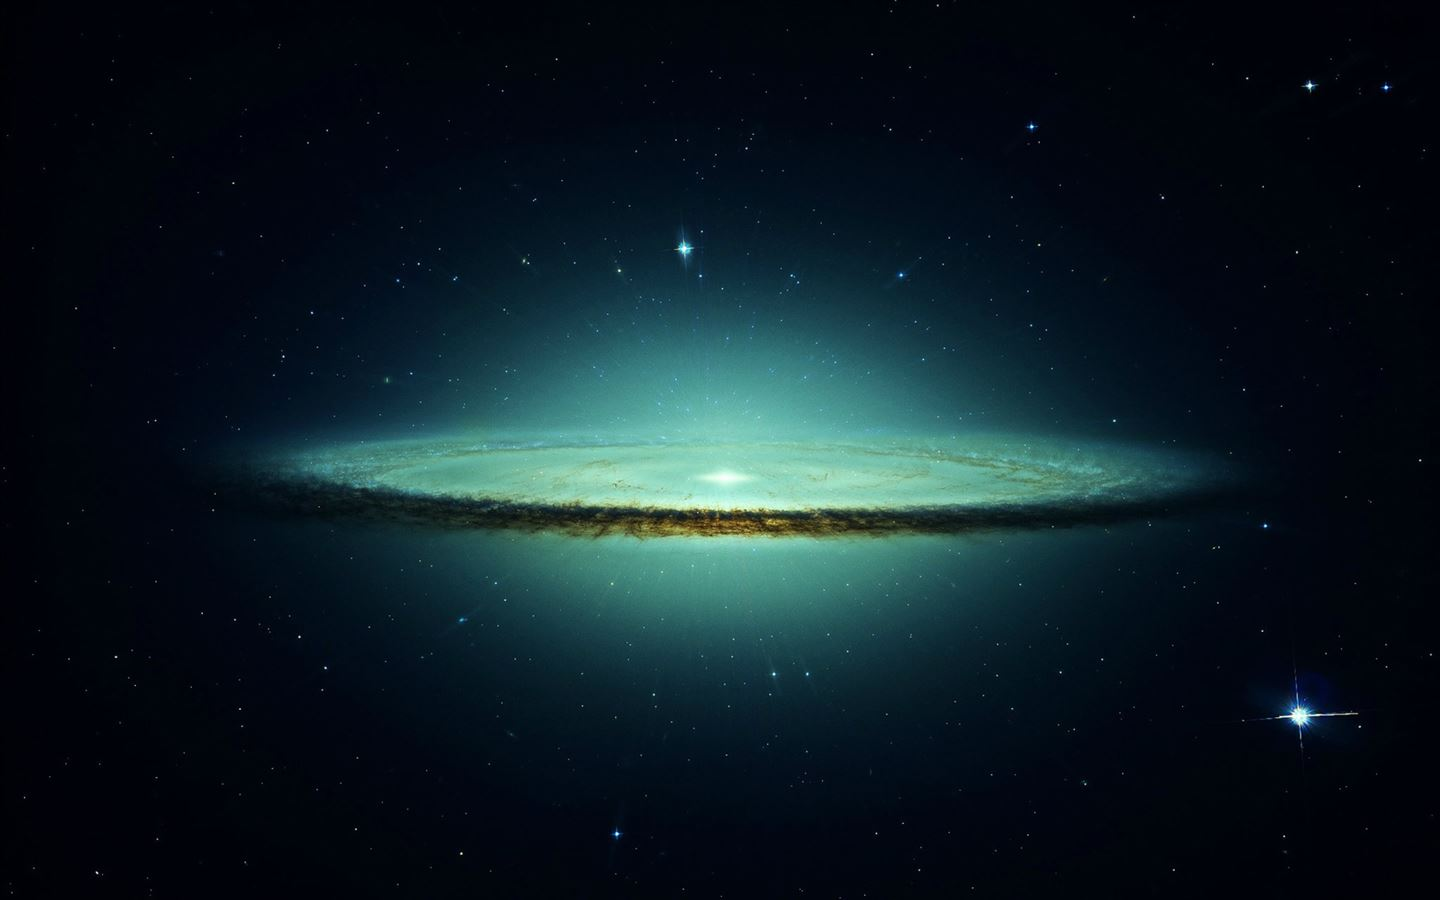 Galaxy Mac Wallpaper Download Free Mac Wallpapers Download